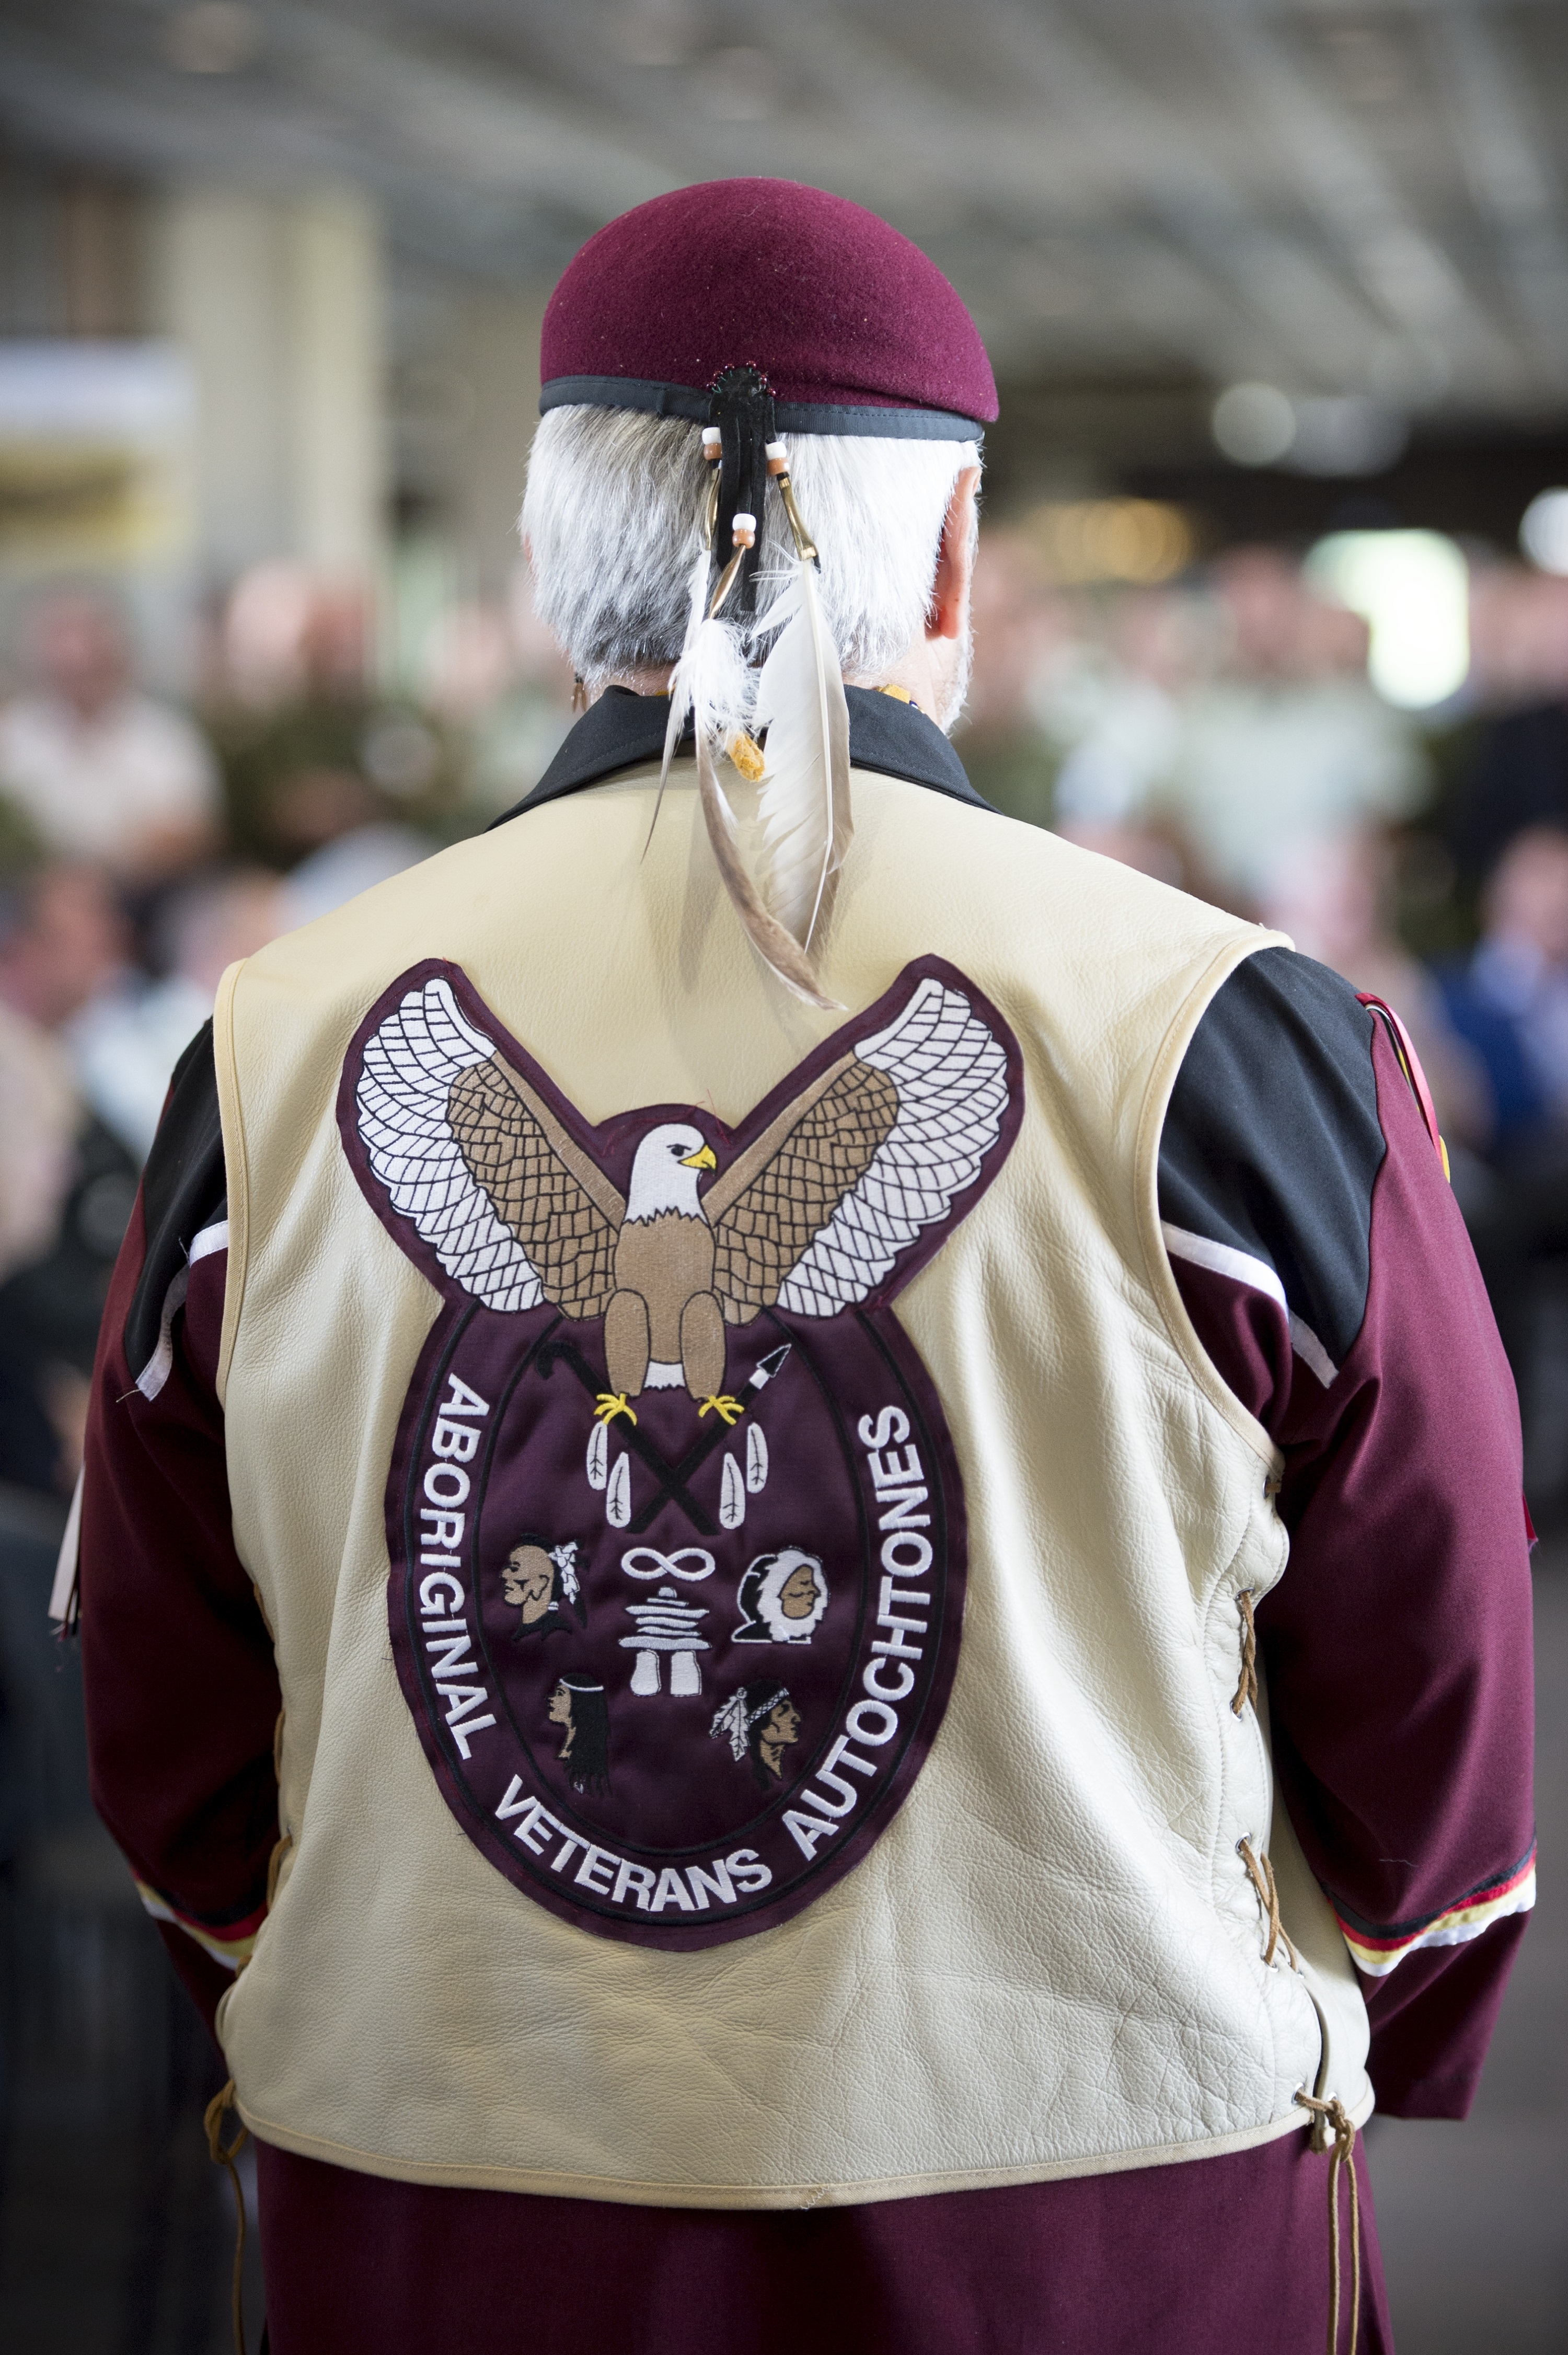 A member of the Aboriginal Veterans Autochtones attends the 2015 Aboriginal Awareness Week ceremony held in the main concourse of National Defence Headquarters in Ottawa, Ontario, on May 19. Photo by: Cpl Andrew Wesley.